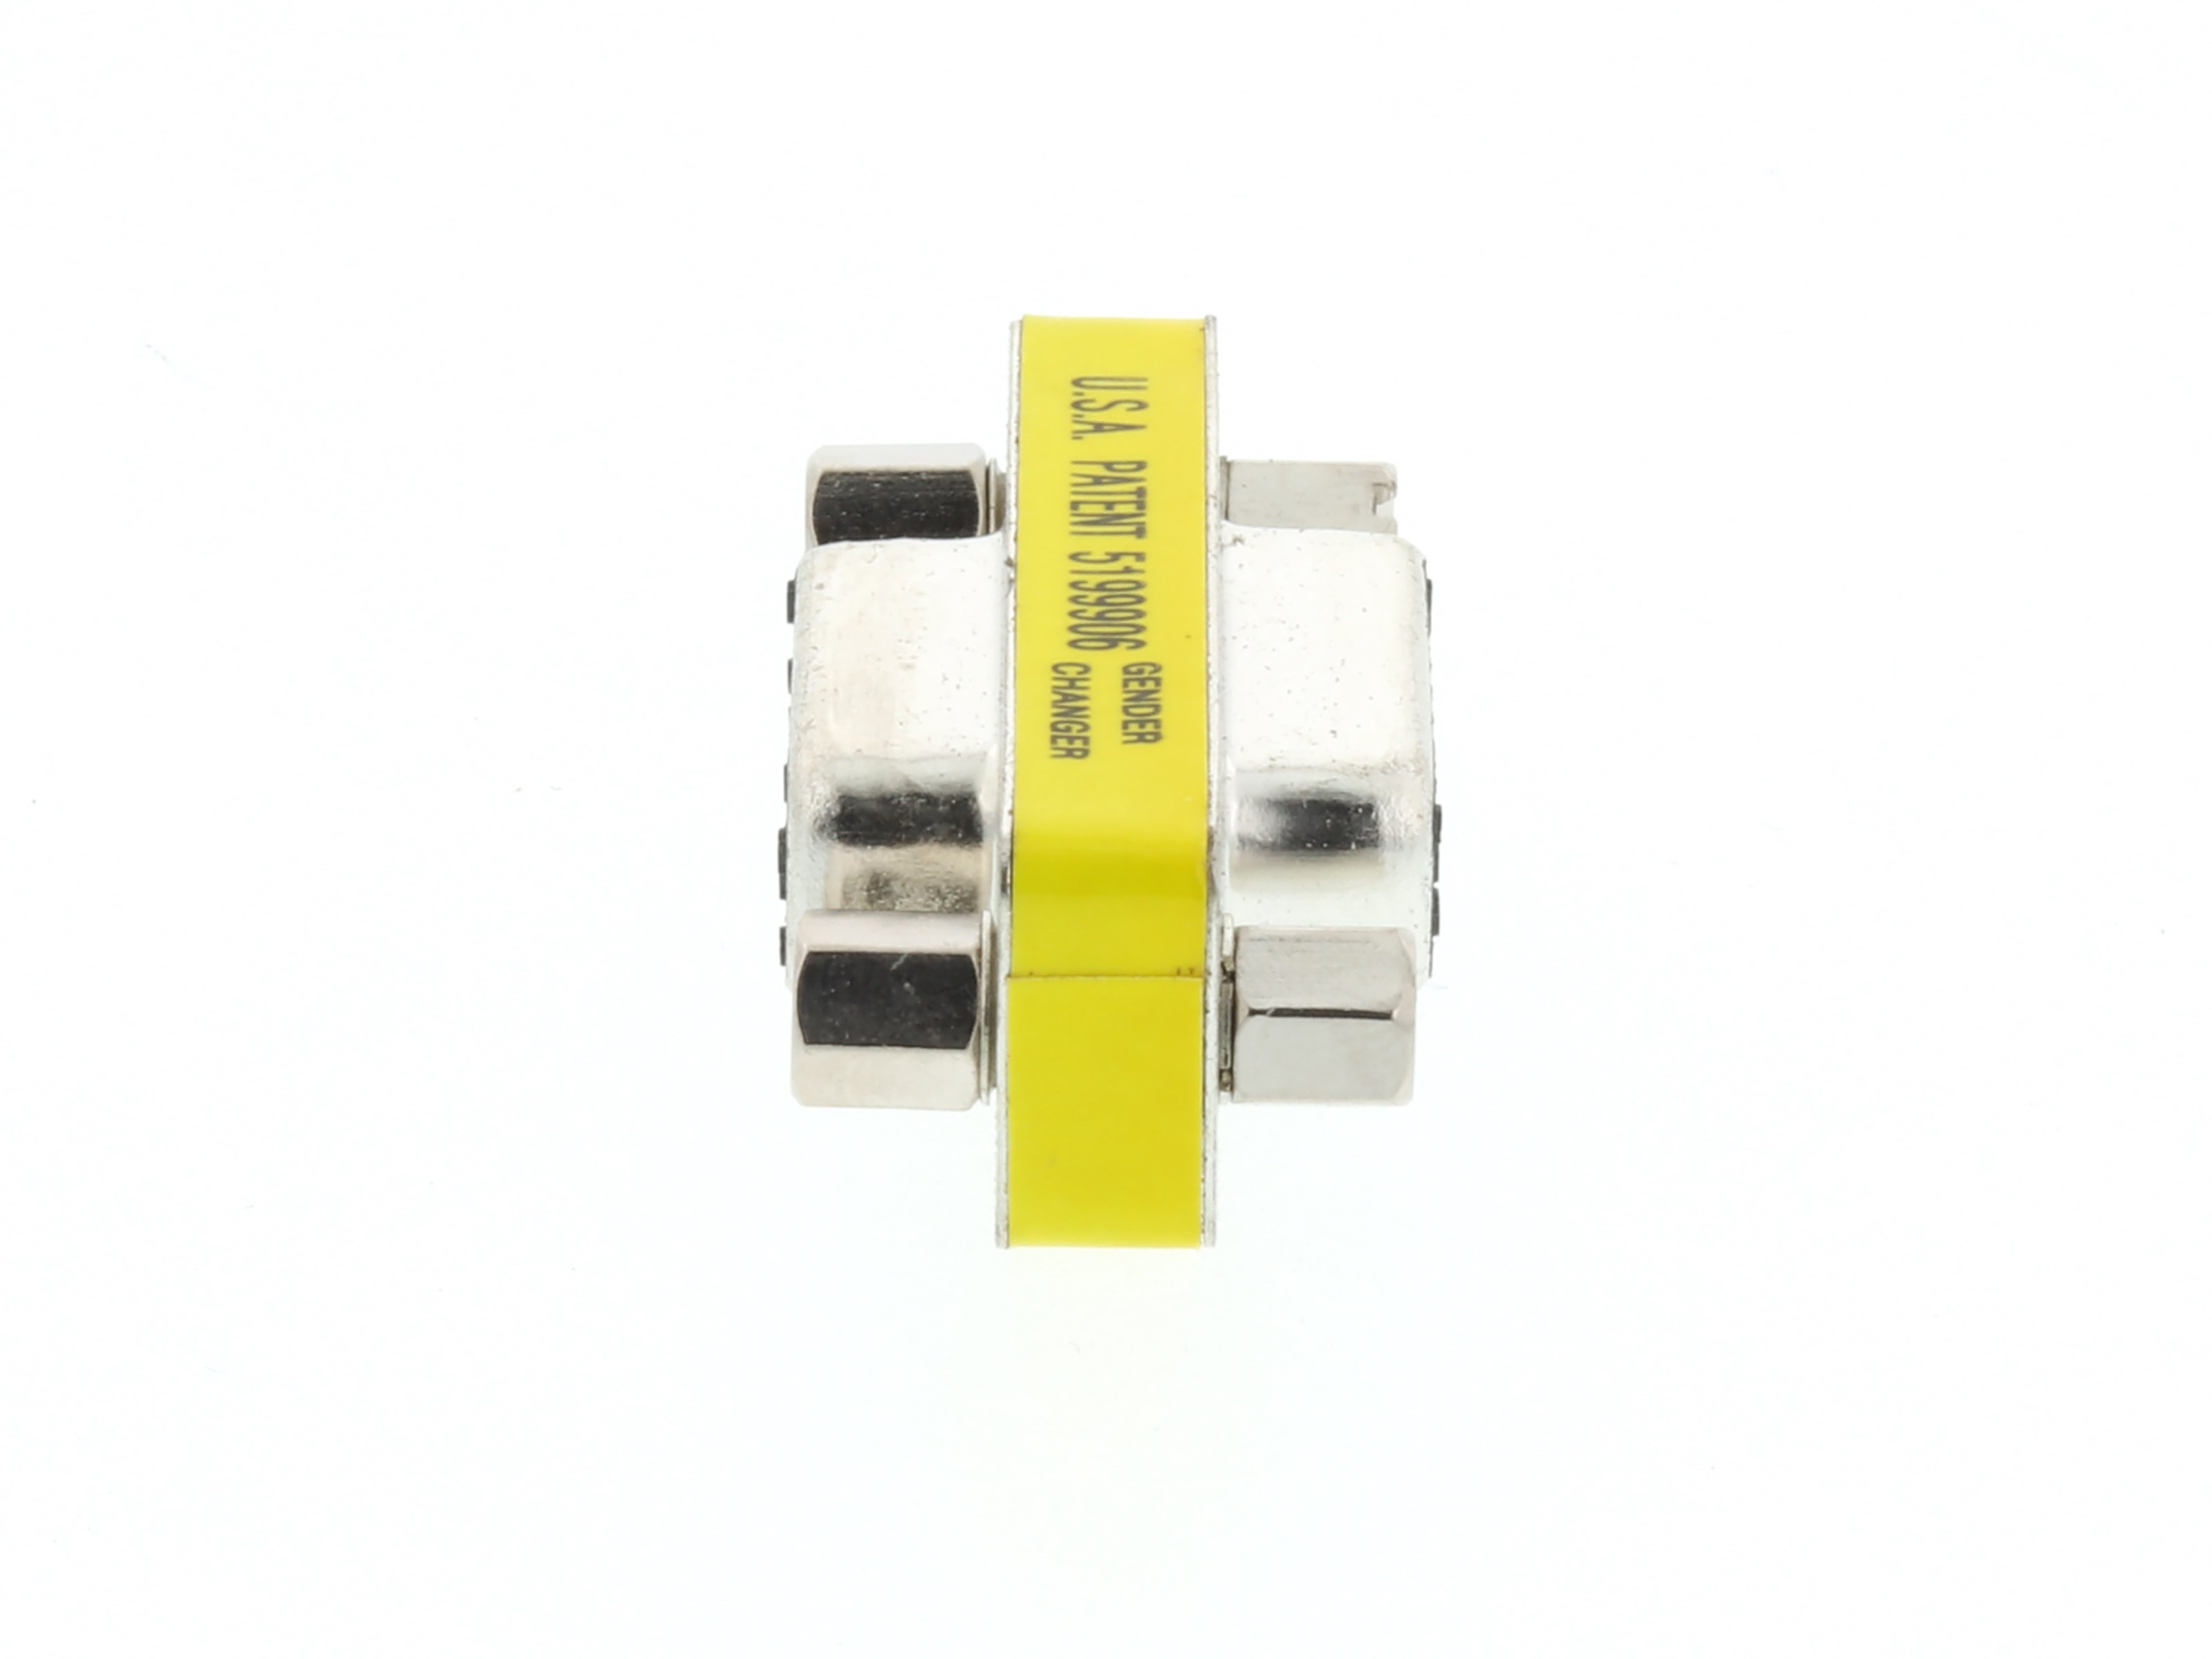 Hd15 Female To Female Gender Changer Computer Cable Store